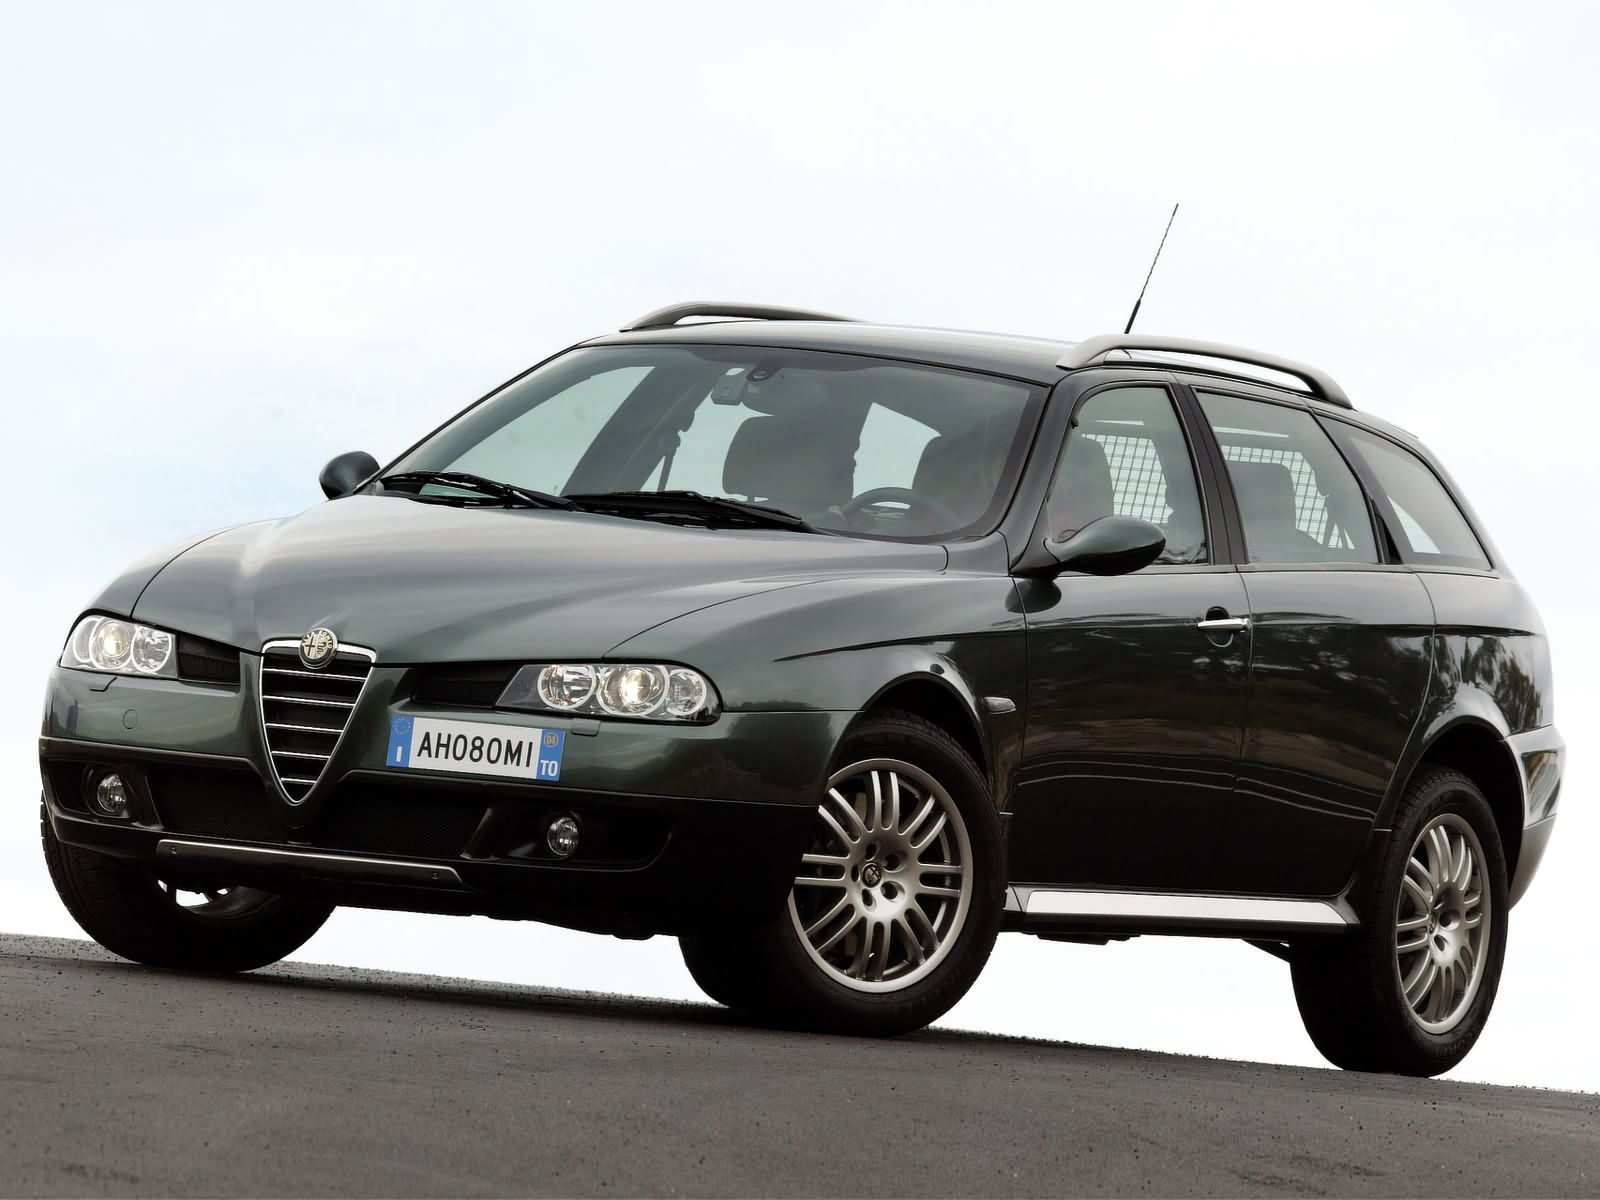 alfa romeo 156 crosswagon technical details history photos on better parts ltd. Black Bedroom Furniture Sets. Home Design Ideas